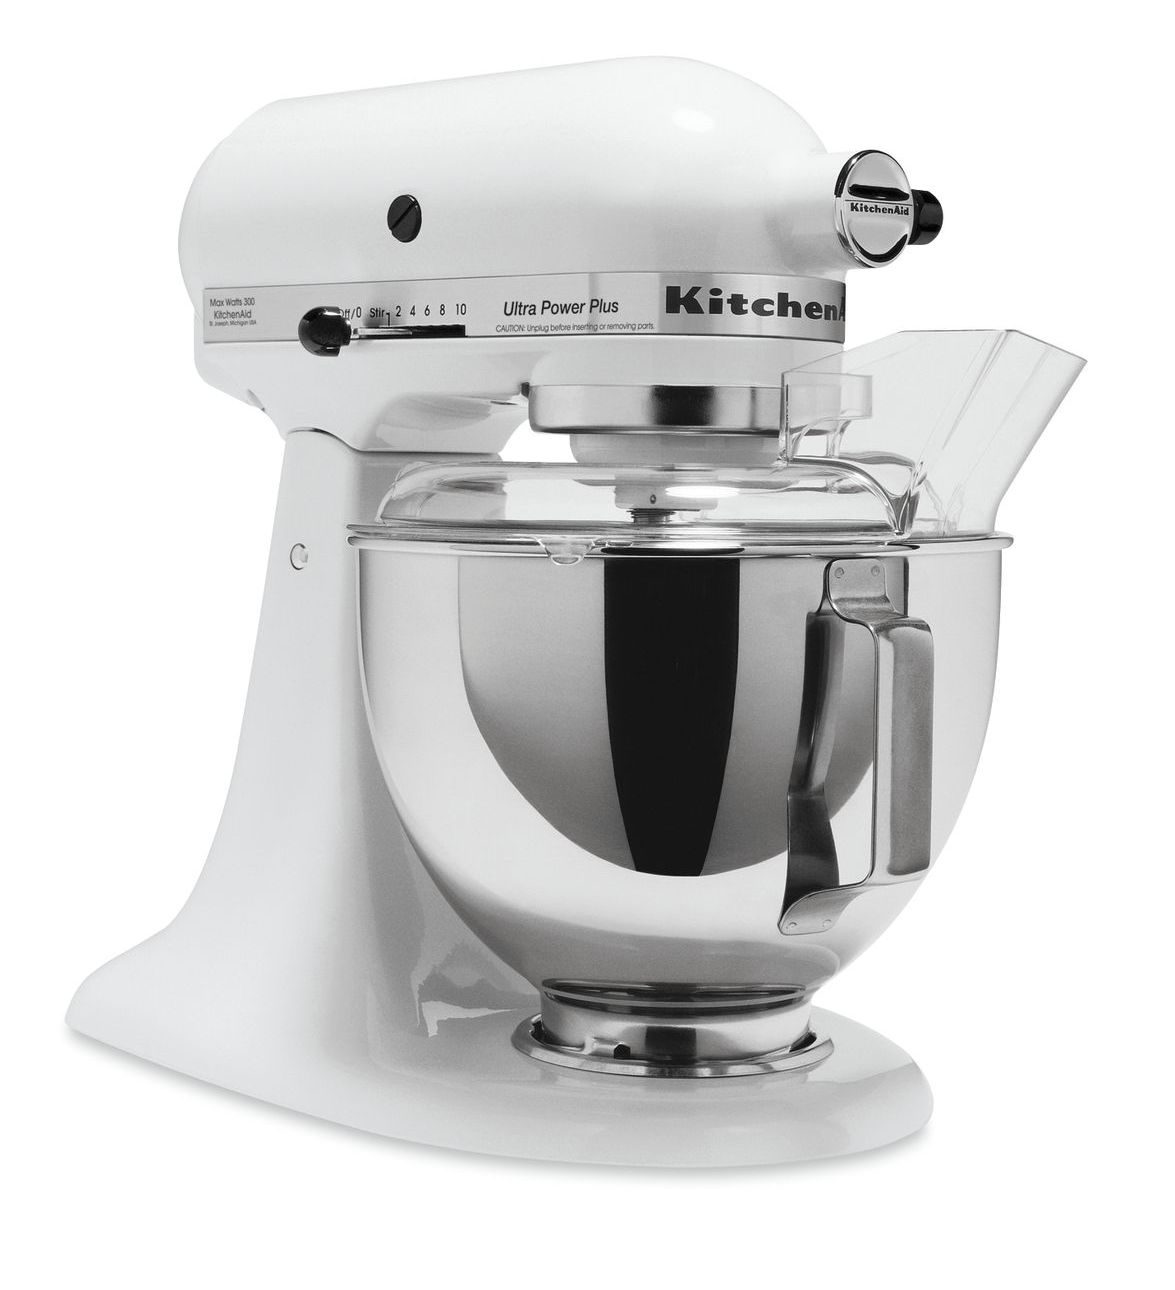 Sears Canada Deals 33 Off Kitchenaid Ultra Power Plus